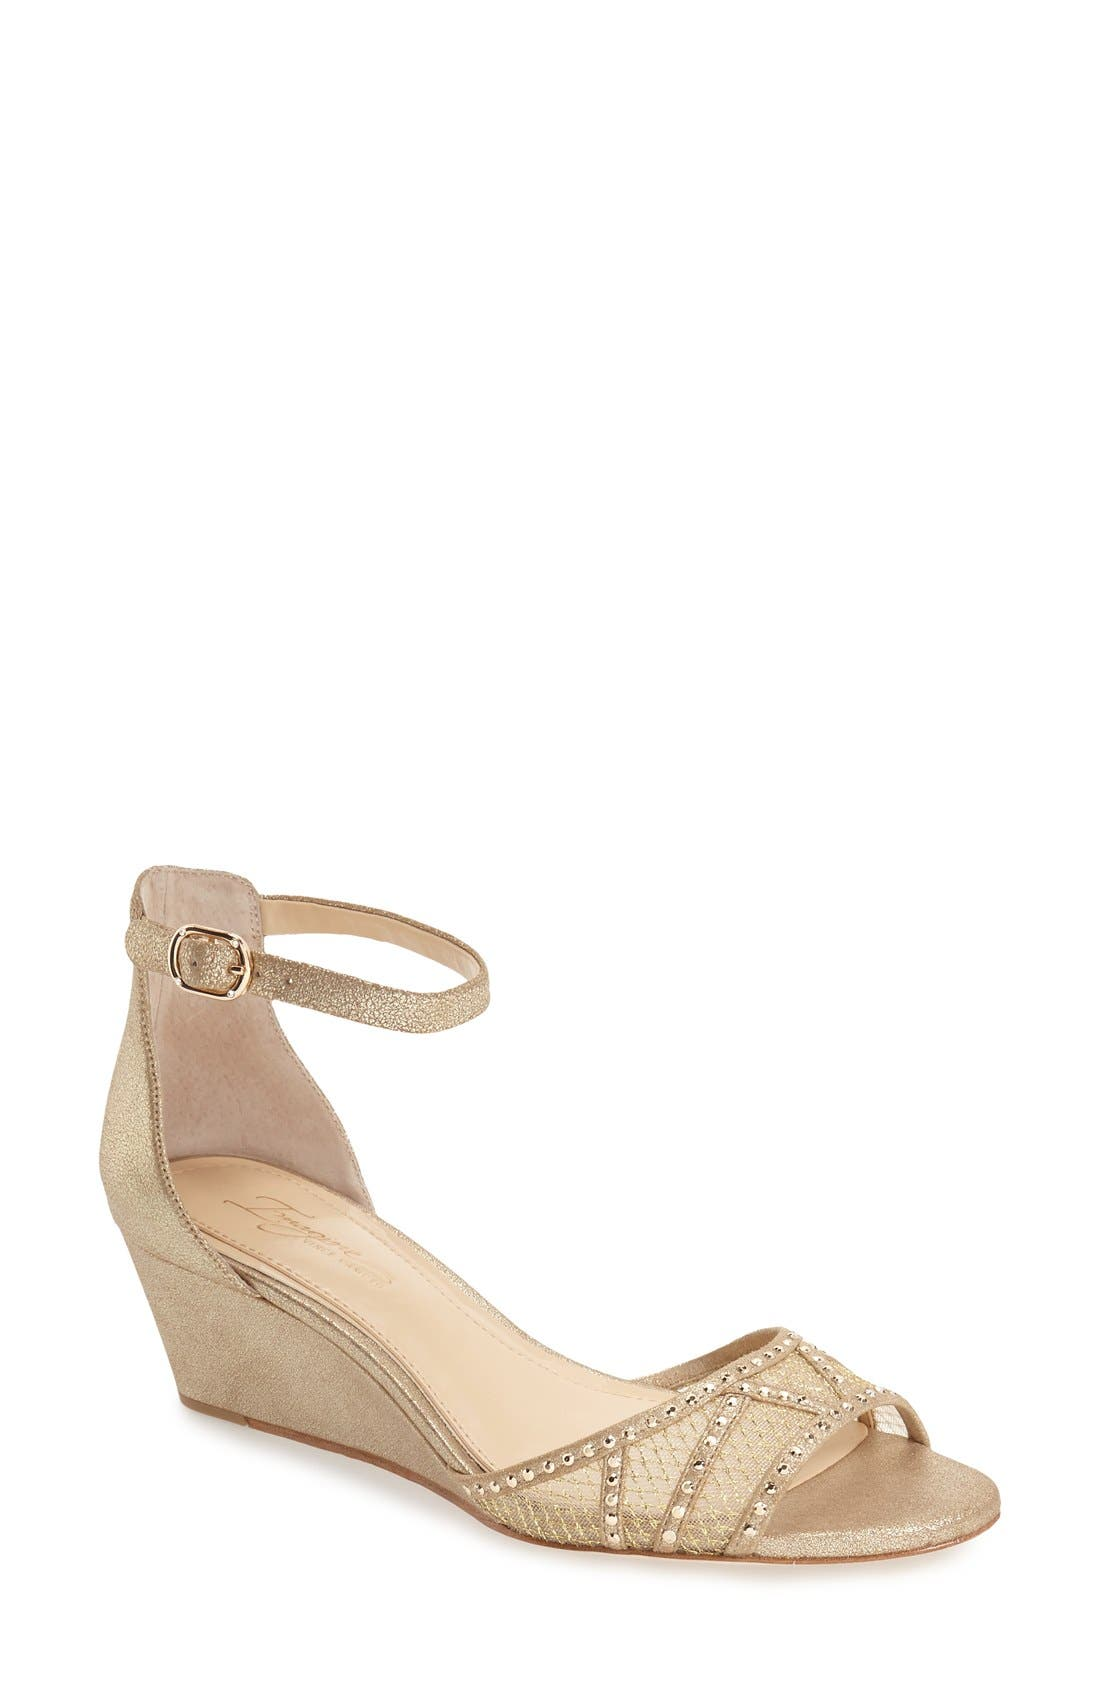 IMAGINE BY VINCE CAMUTO 'Joan' Studded Wedge Sandal